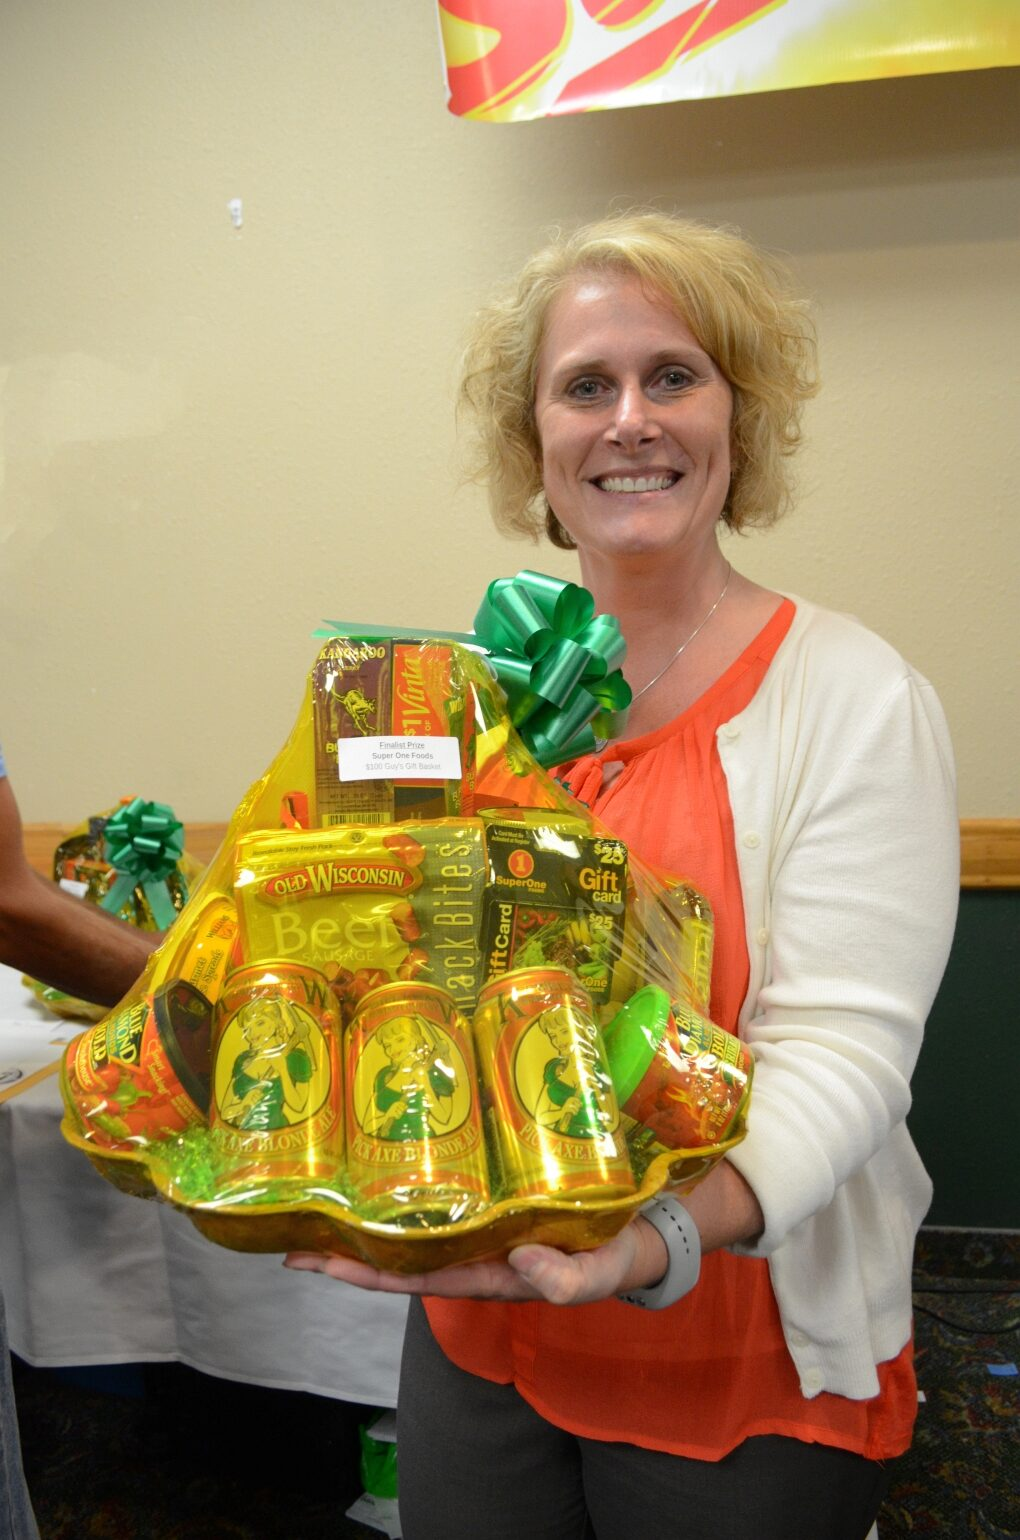 Kay Ryan from Gwinn with her $100 value gift basket from Super One Foods